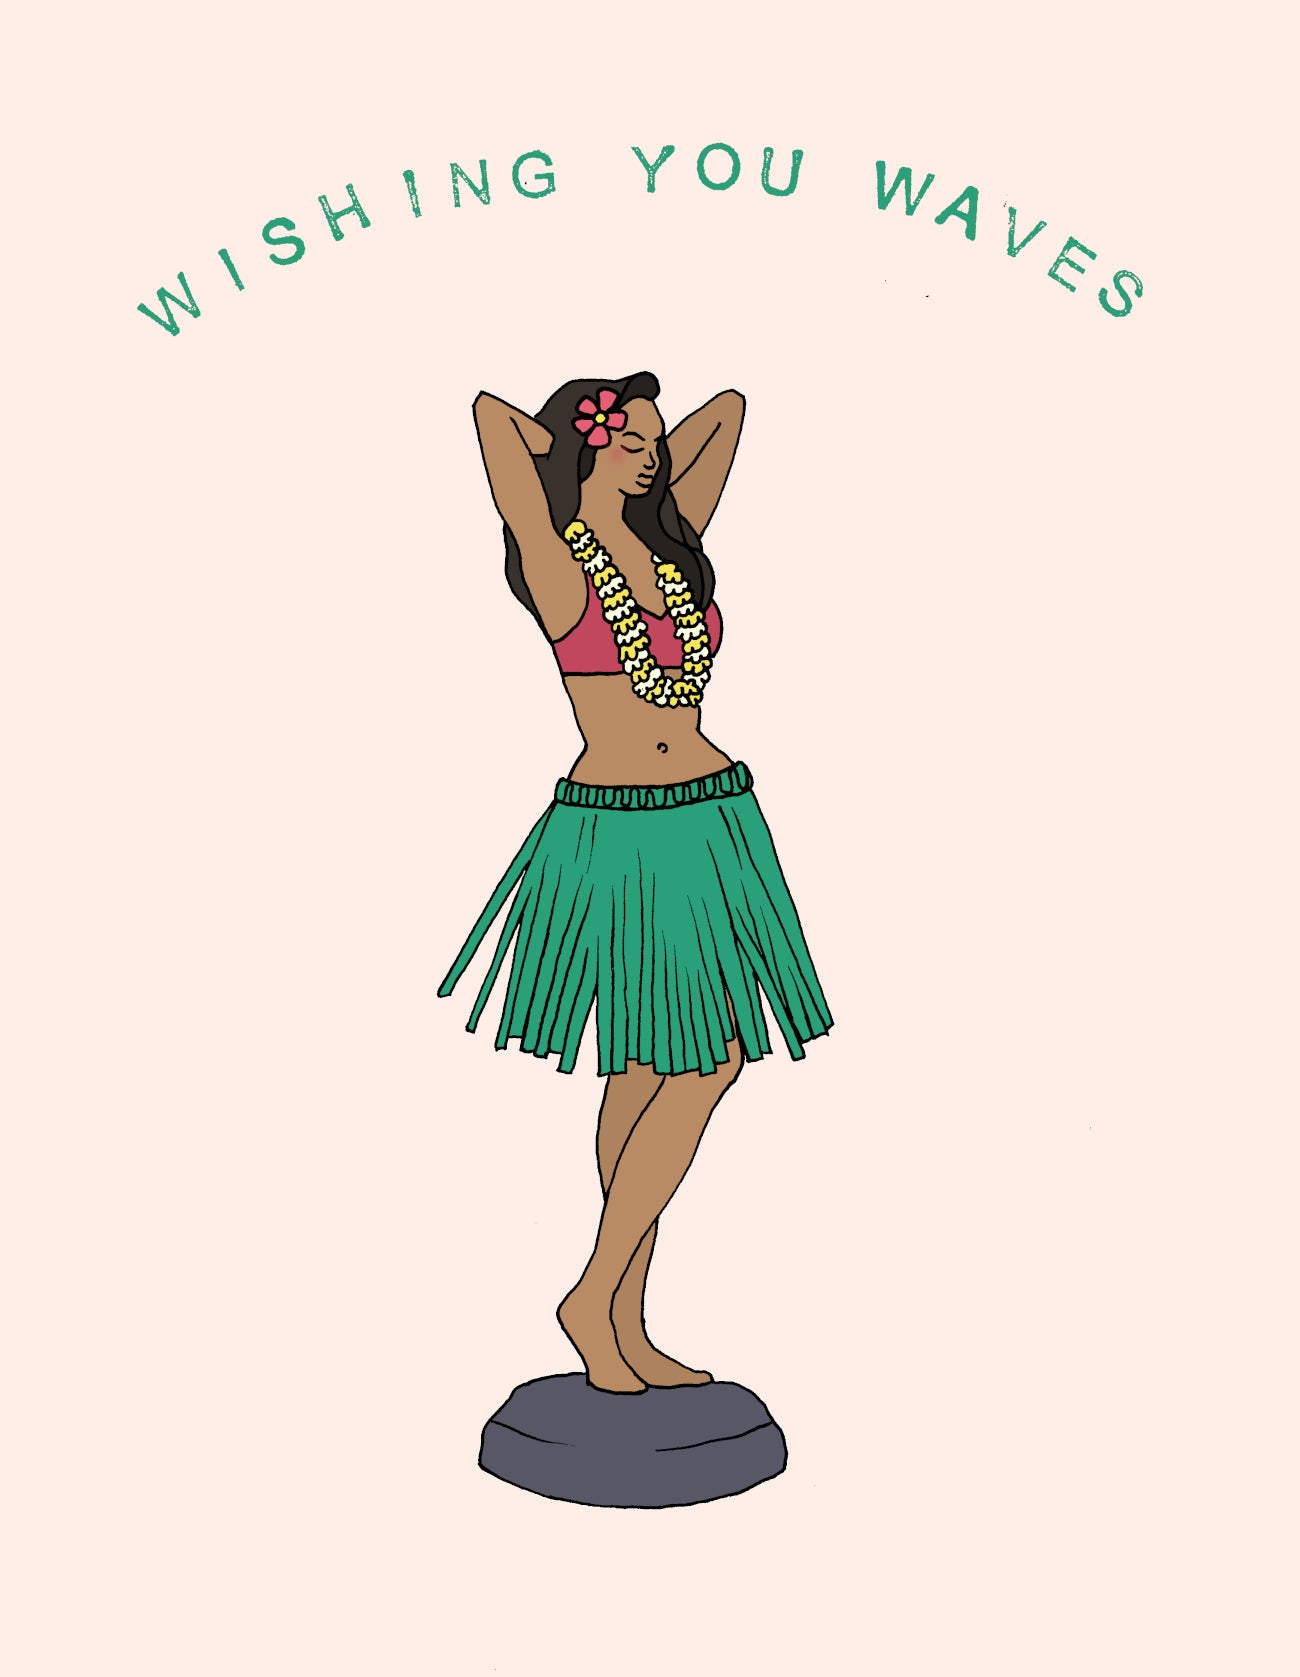 Made in Canada surfing themed greeting card with drawing of Hawaiian hula girl Leilani. Caption reads: Wishing you waves